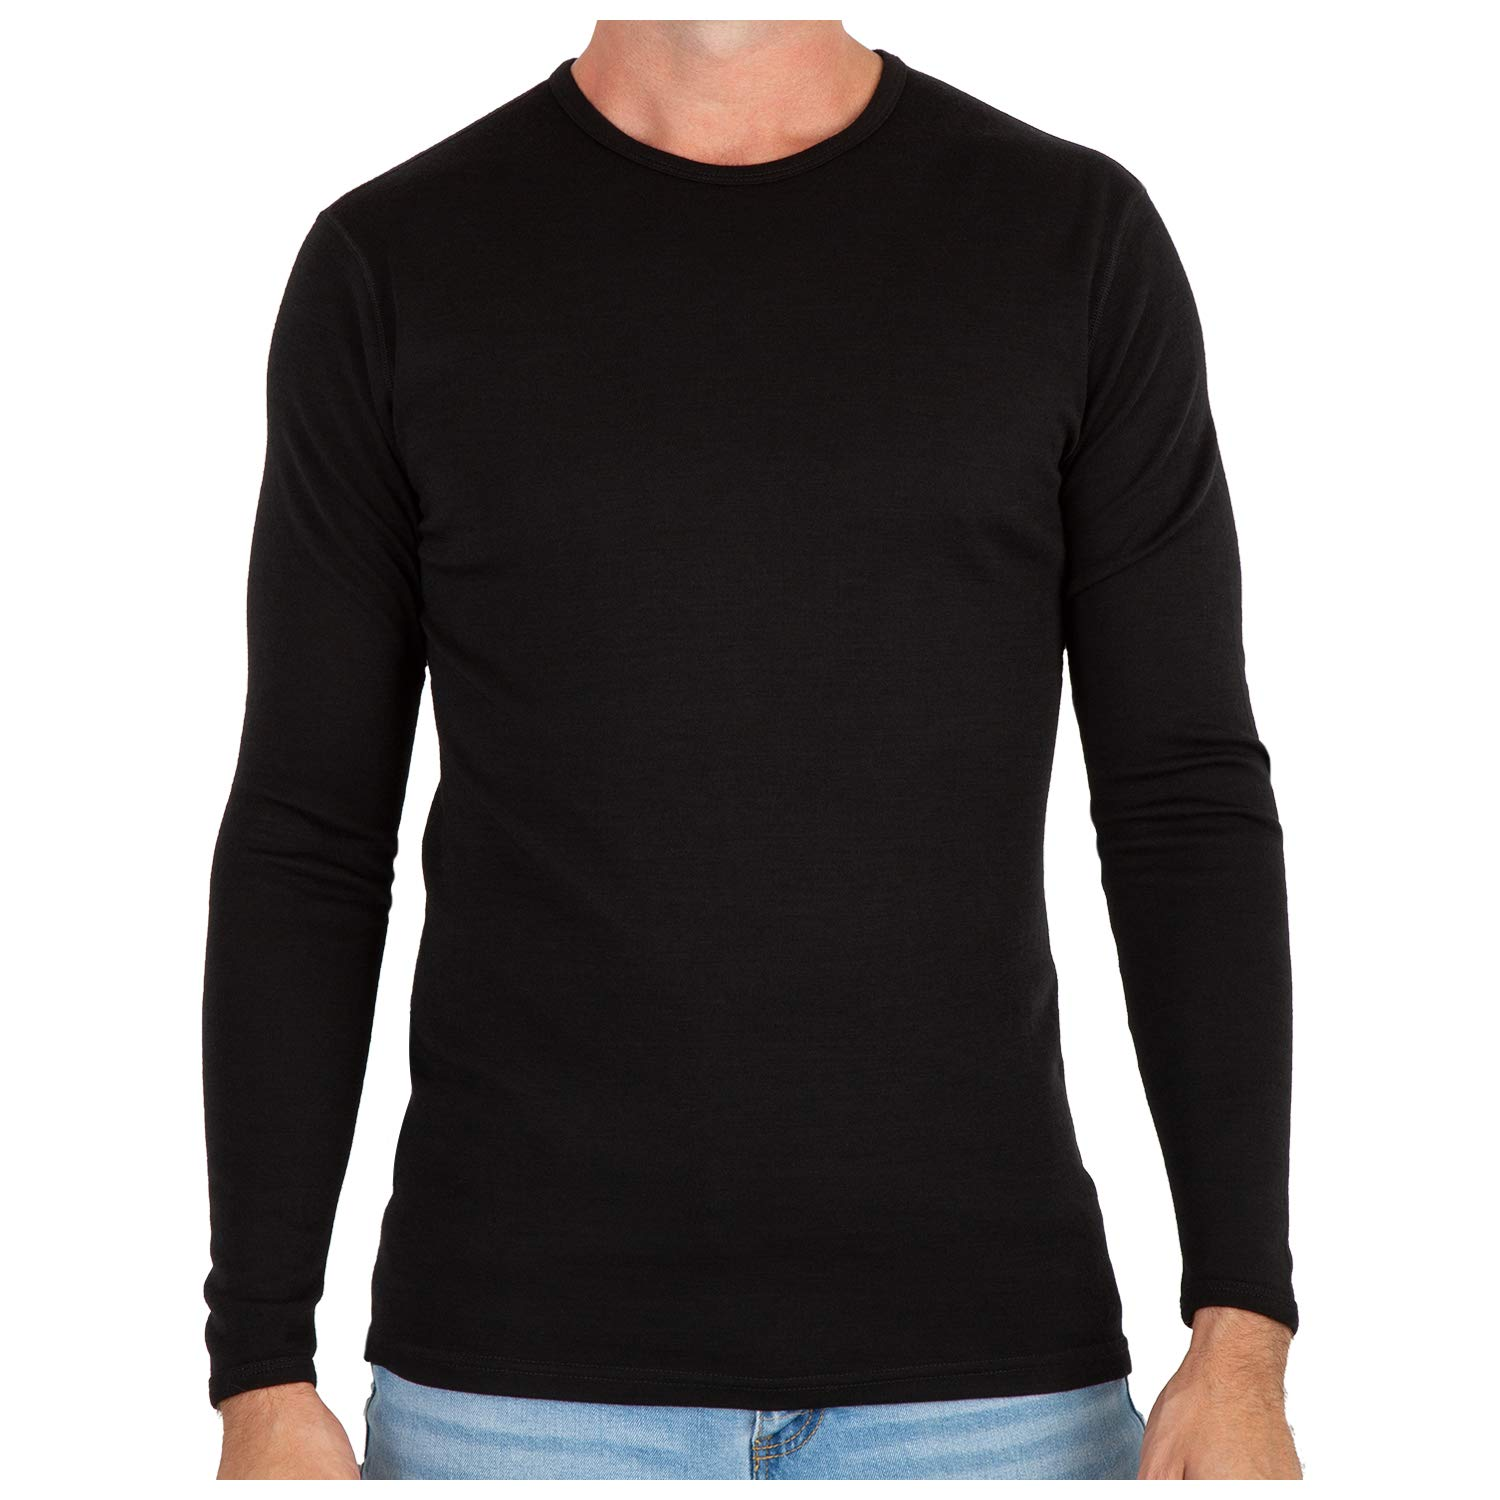 MERIWOOL Men's Merino Wool Midweight Baselayer Crew - Black/M